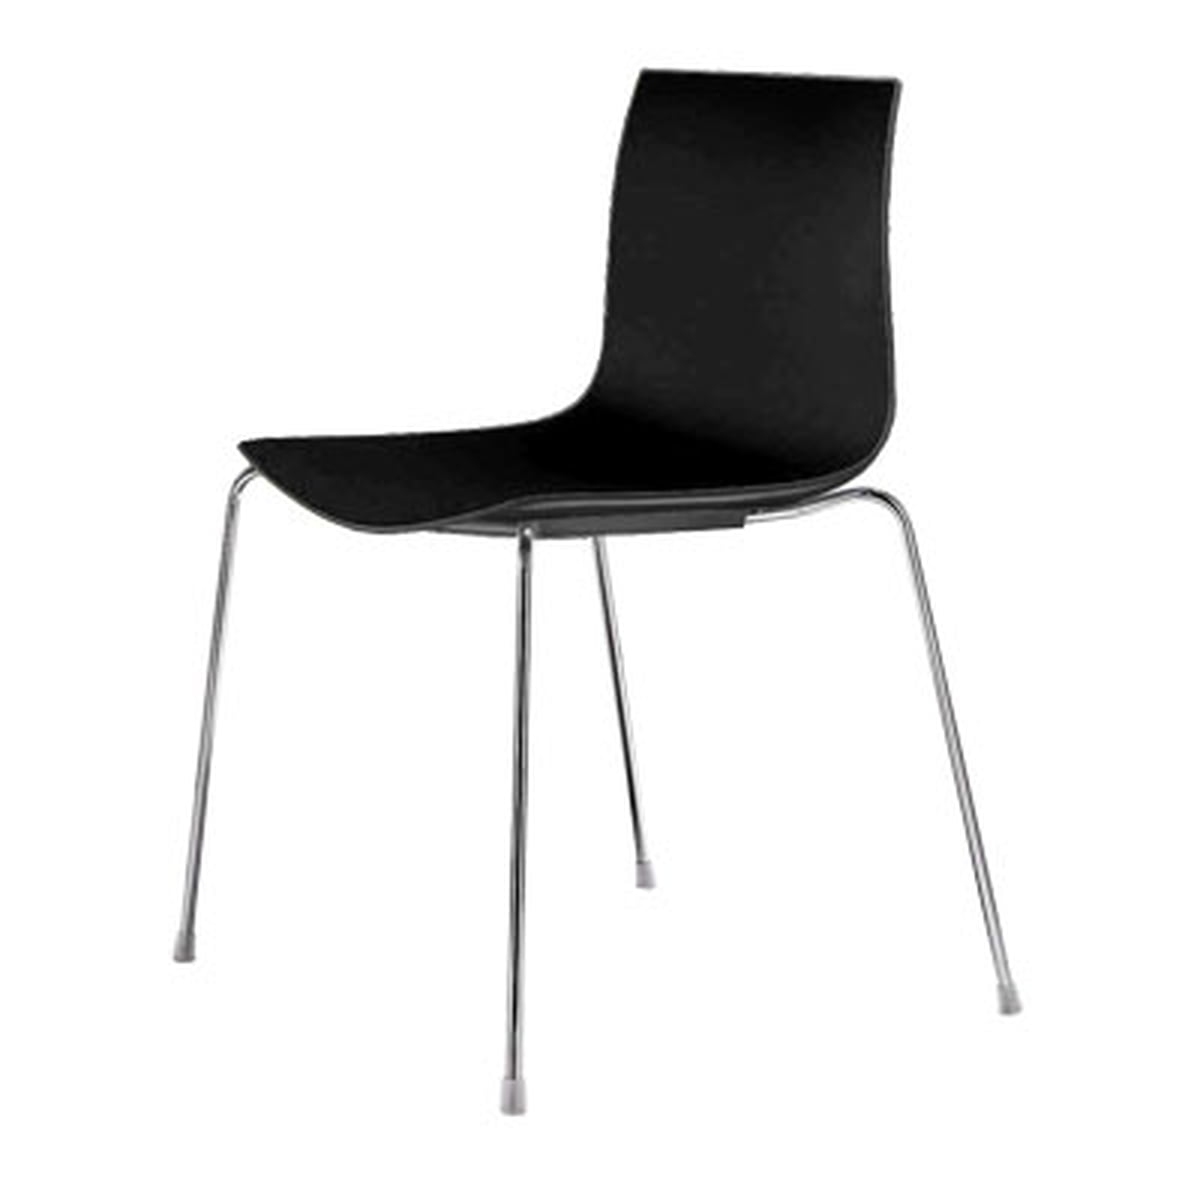 catifa 46 chair four legs by arper. Black Bedroom Furniture Sets. Home Design Ideas